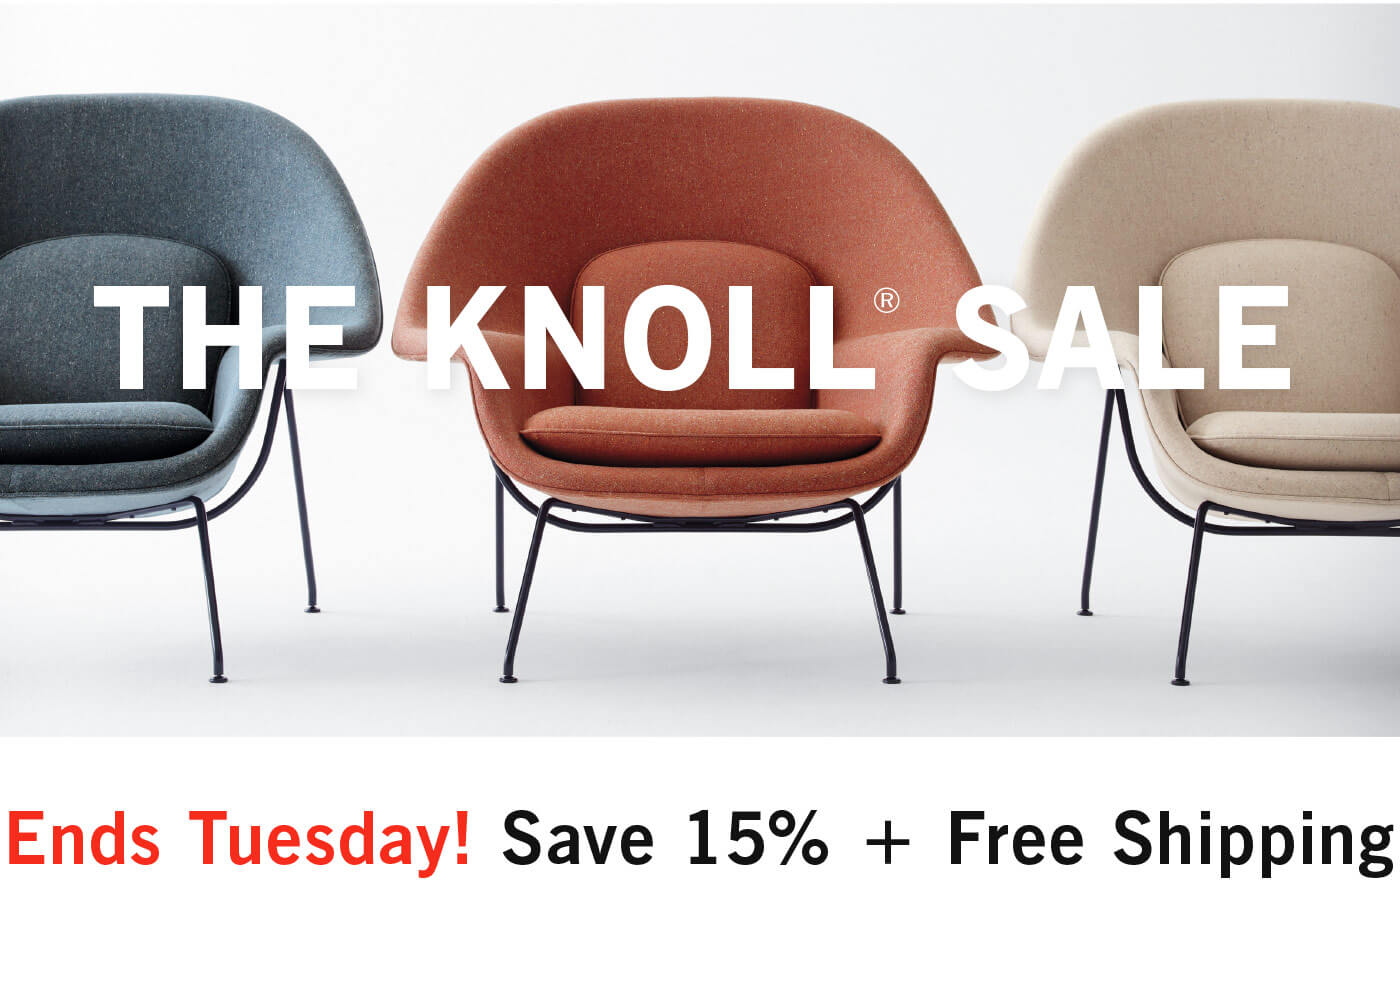 The Knoll Sale Ends Tuesday